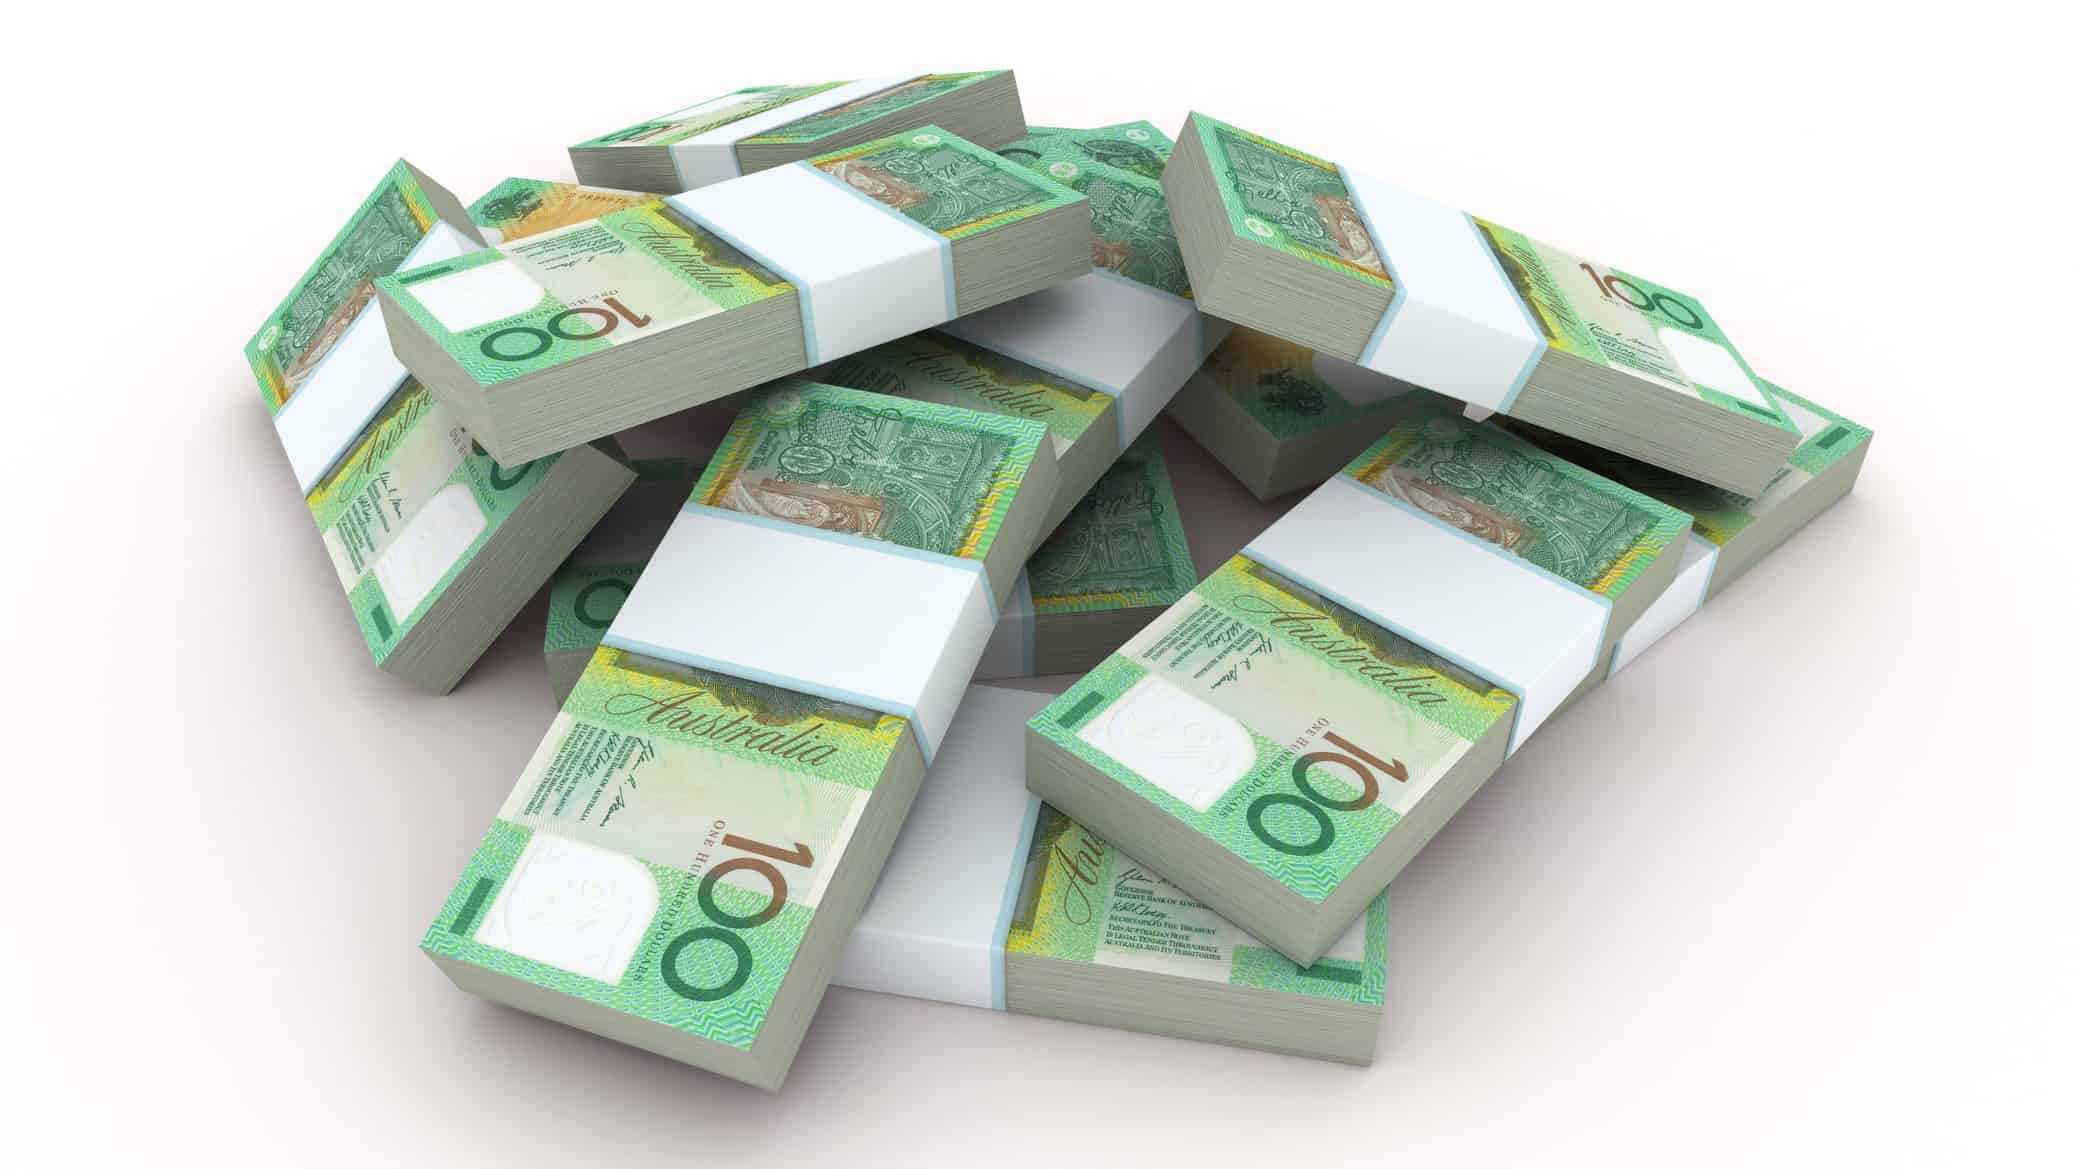 janus henderson share price increasing represented by pile of australian one hundred dollar notes